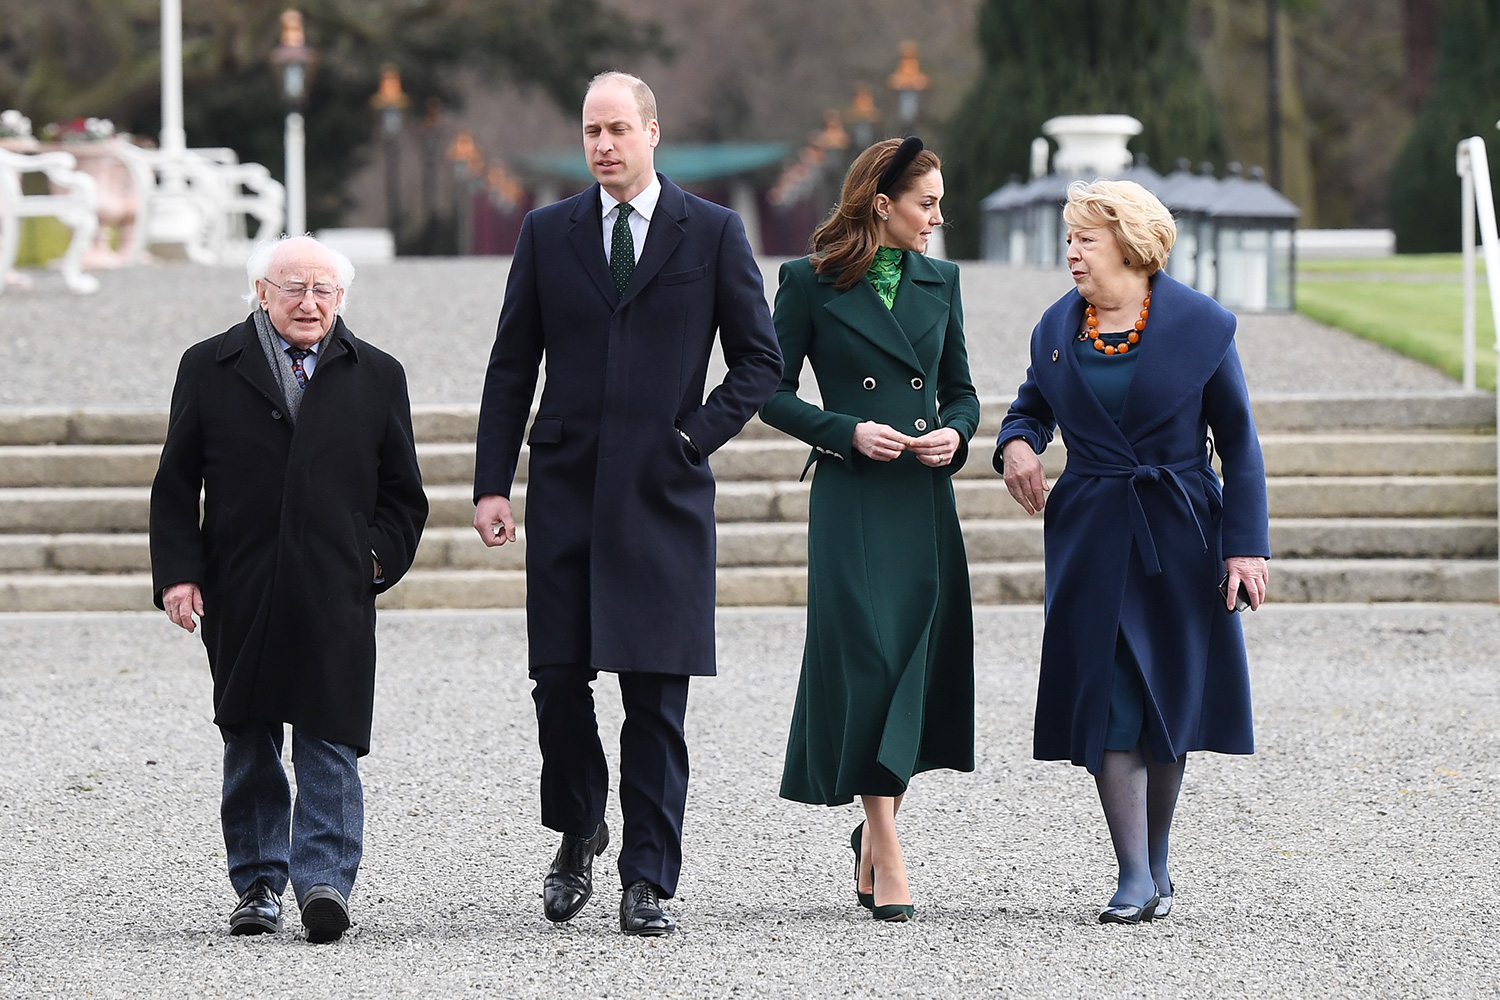 Prince William, Duke of Cambridge, President of Ireland Michael D. Higgins, Catherine, Duchess of Cambridge and Sabina Coyne